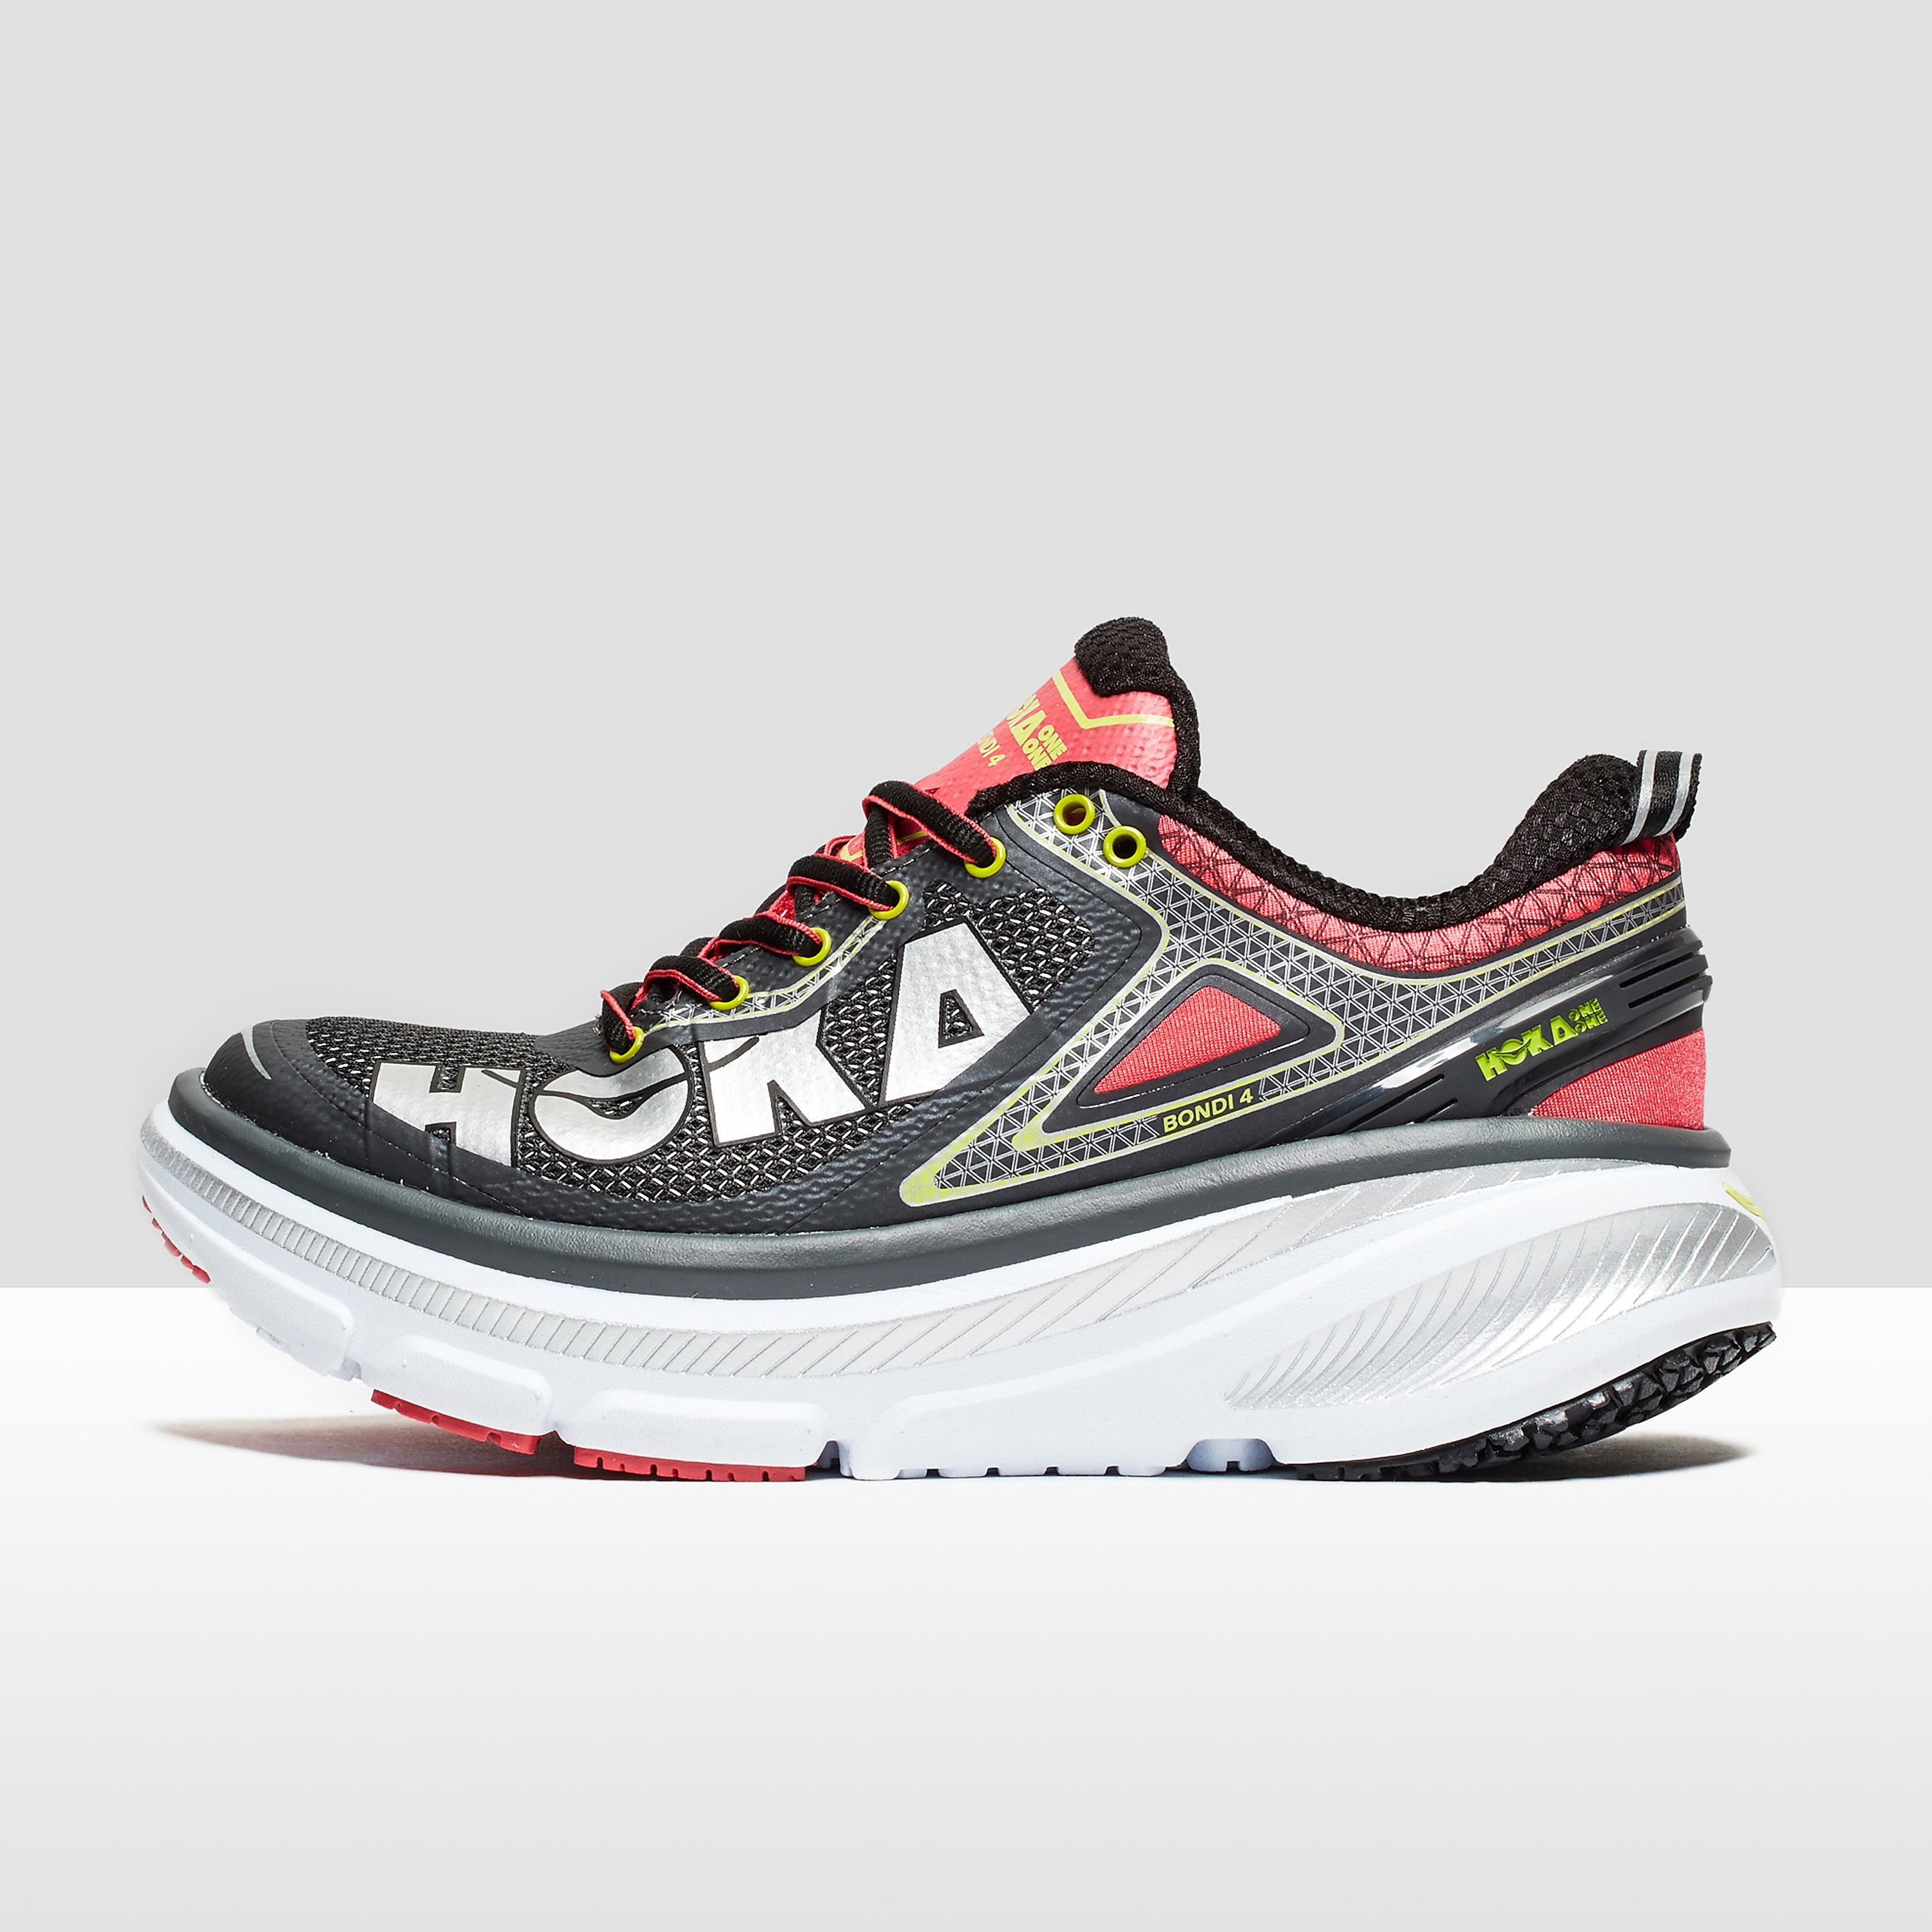 Hoka one one Bondi 4 Women's Running Shoes